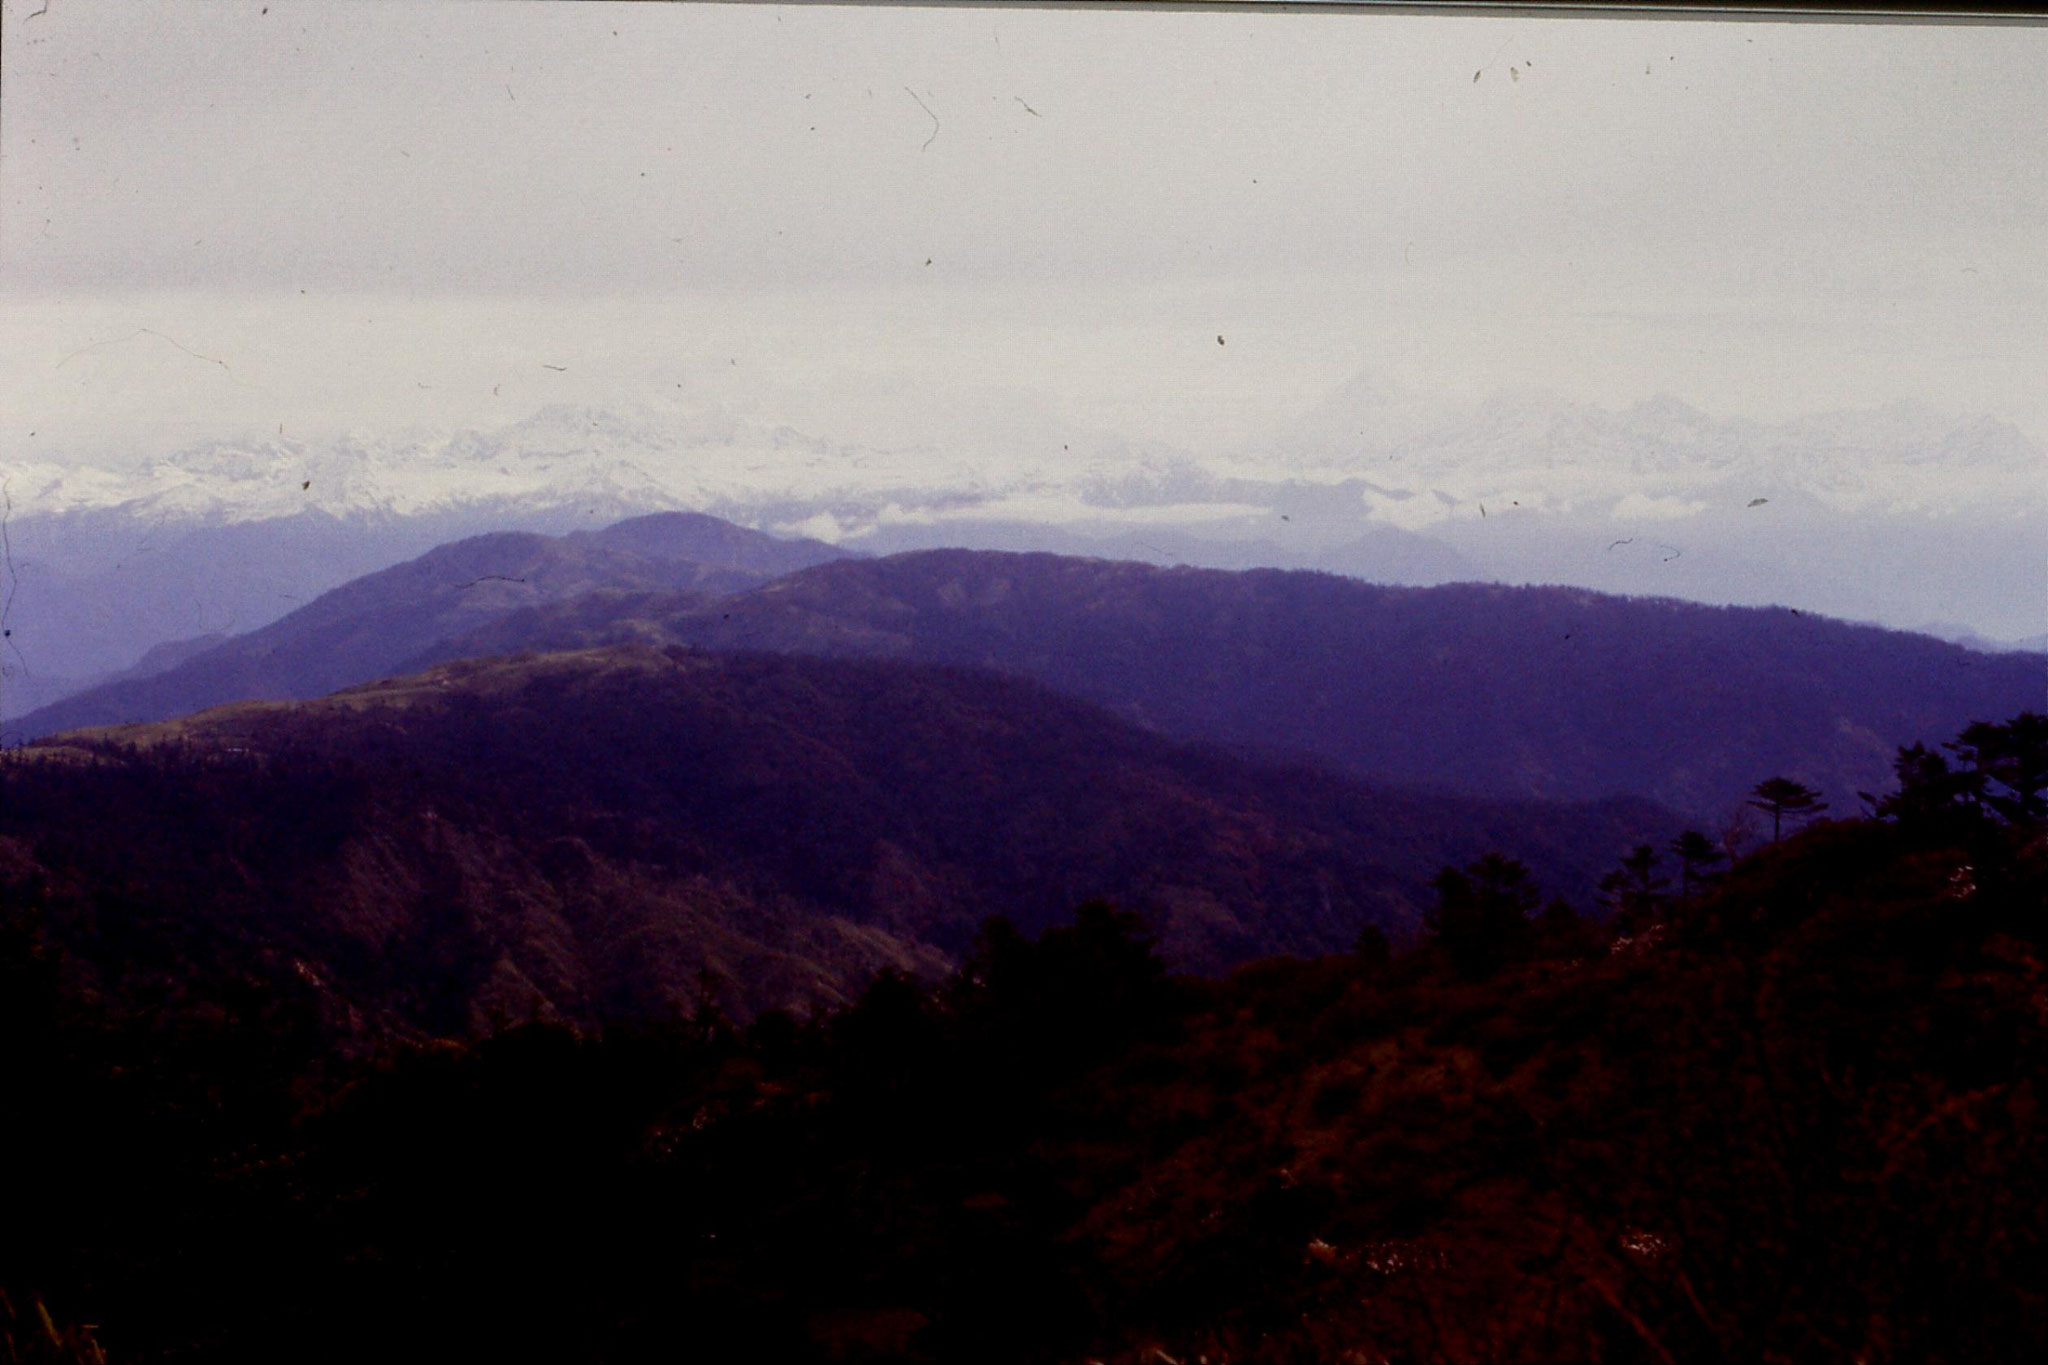 7/5/1990: 9: Sandakpu, view towards Kanchenjunga